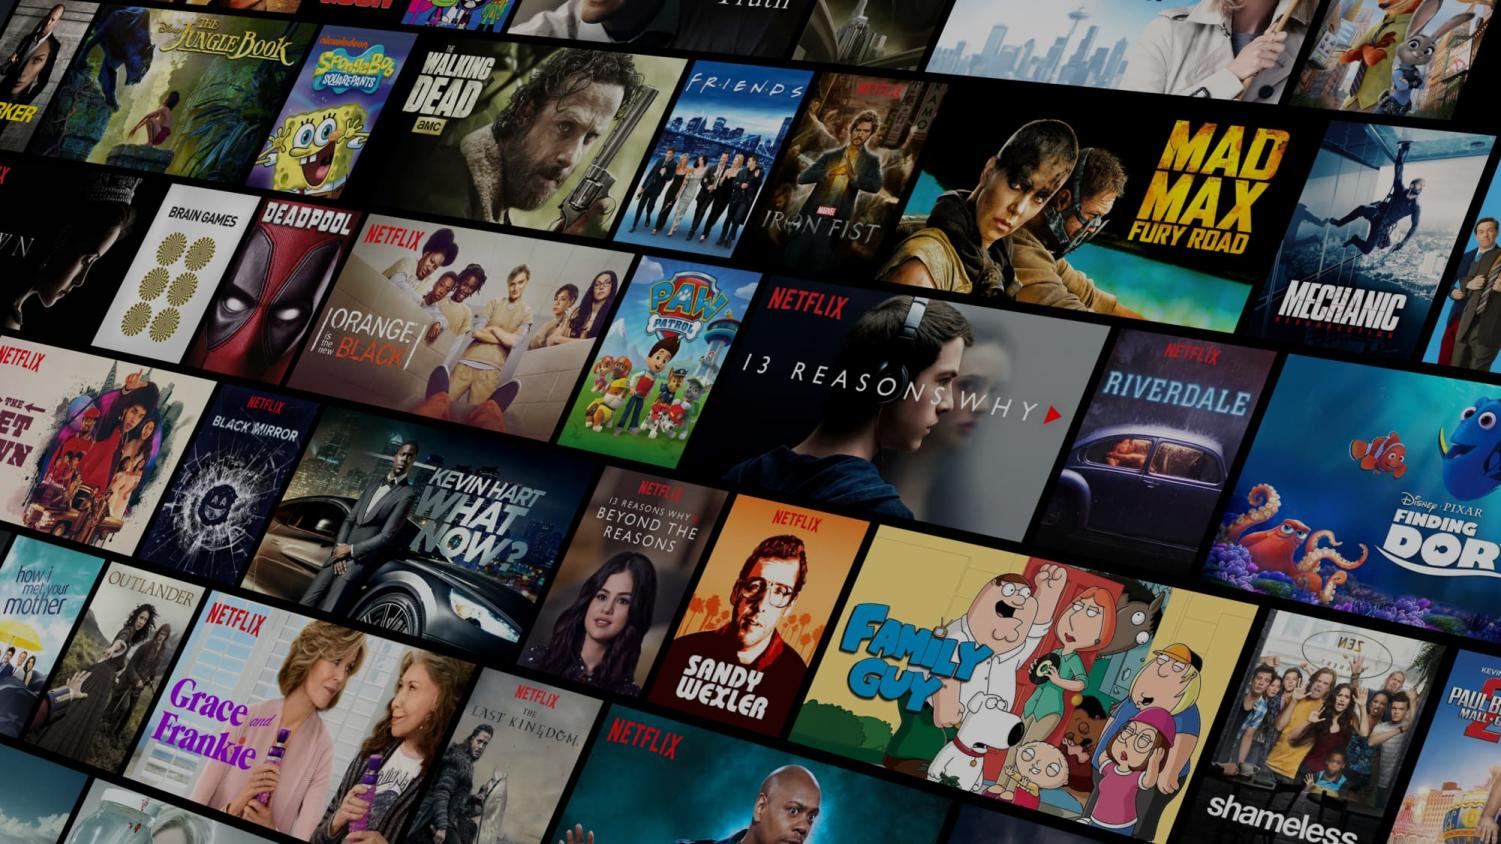 In addition to cable TV shows, Netflix has released numerous original shows and movies perfect for students to stream while avoiding the cold winter weather.